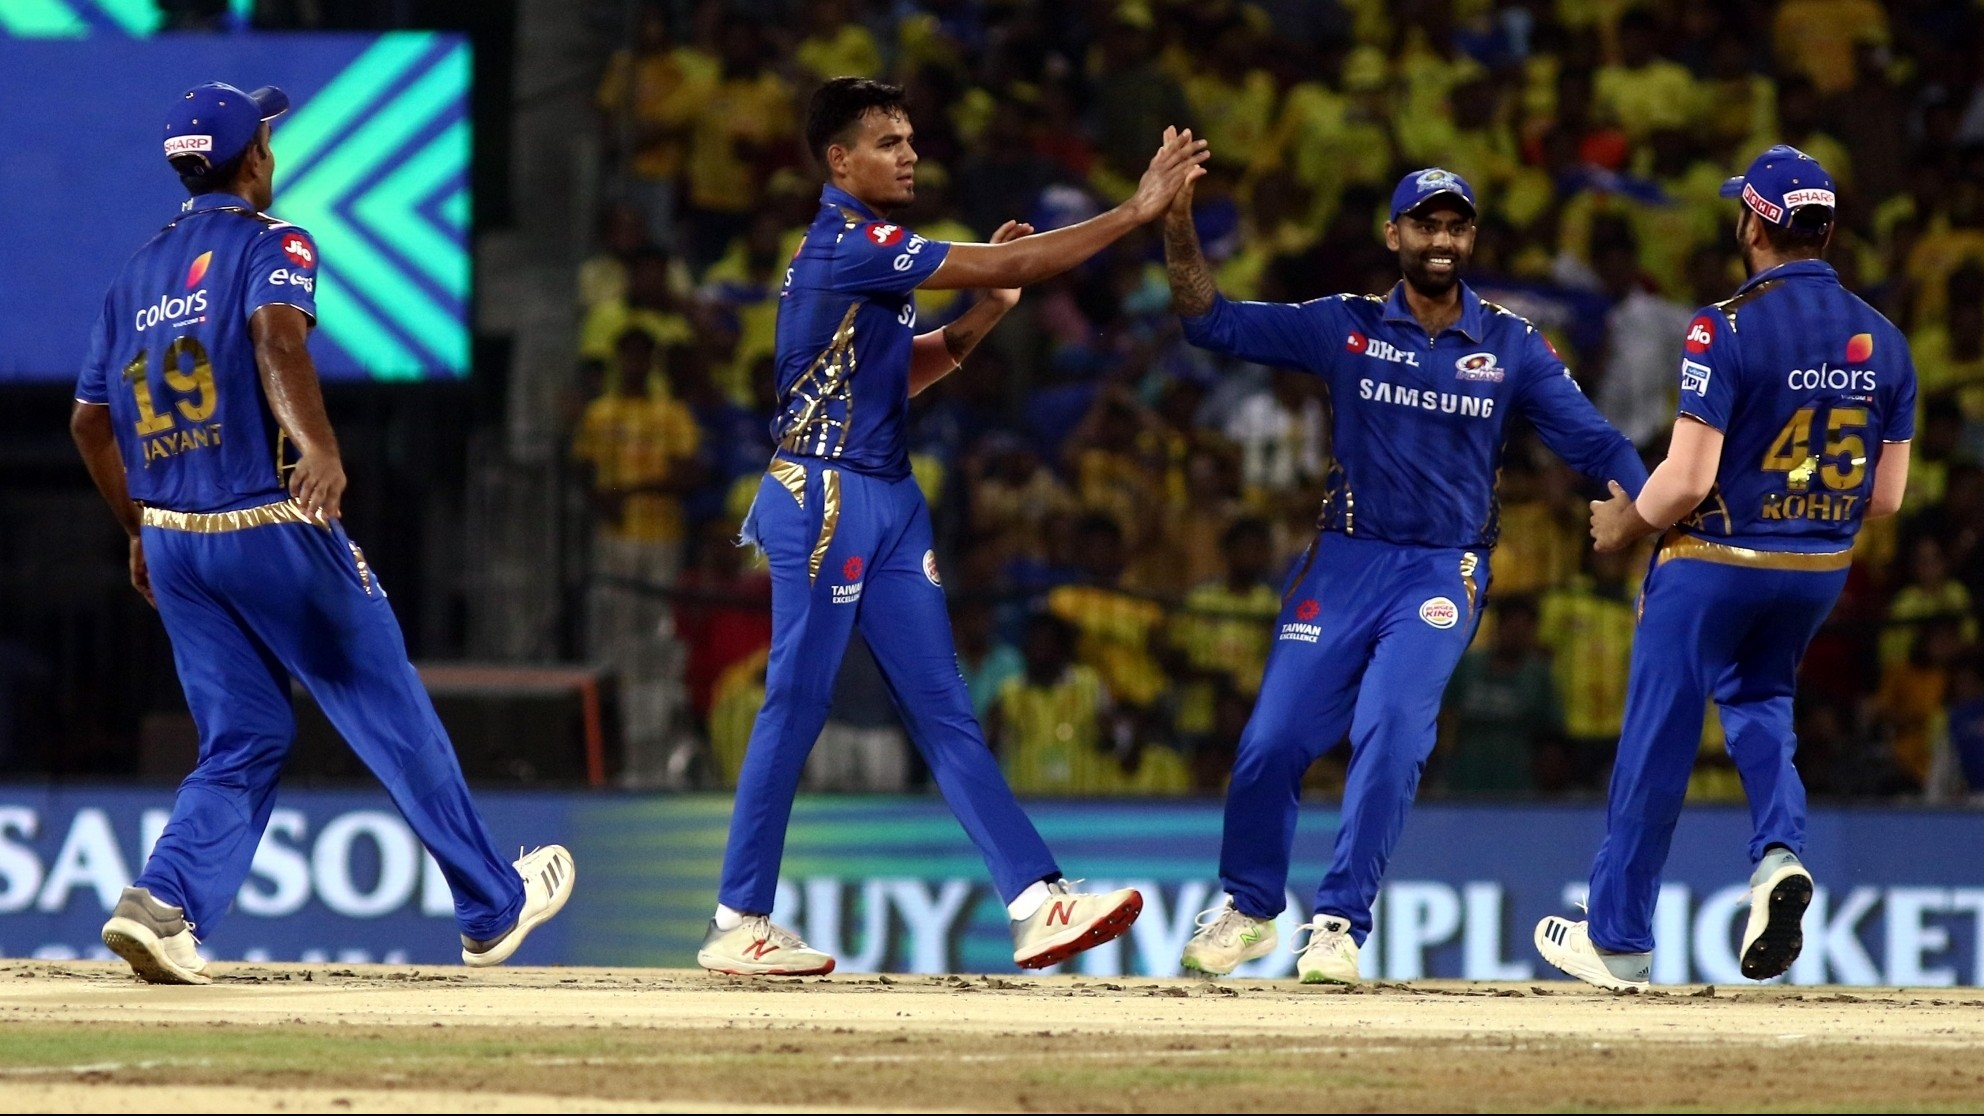 IPL 2019: Qualifier 1, CSK v MI – Twitter reacts as MI spinners restrict CSK to 131 on a turning Chepauk pitch